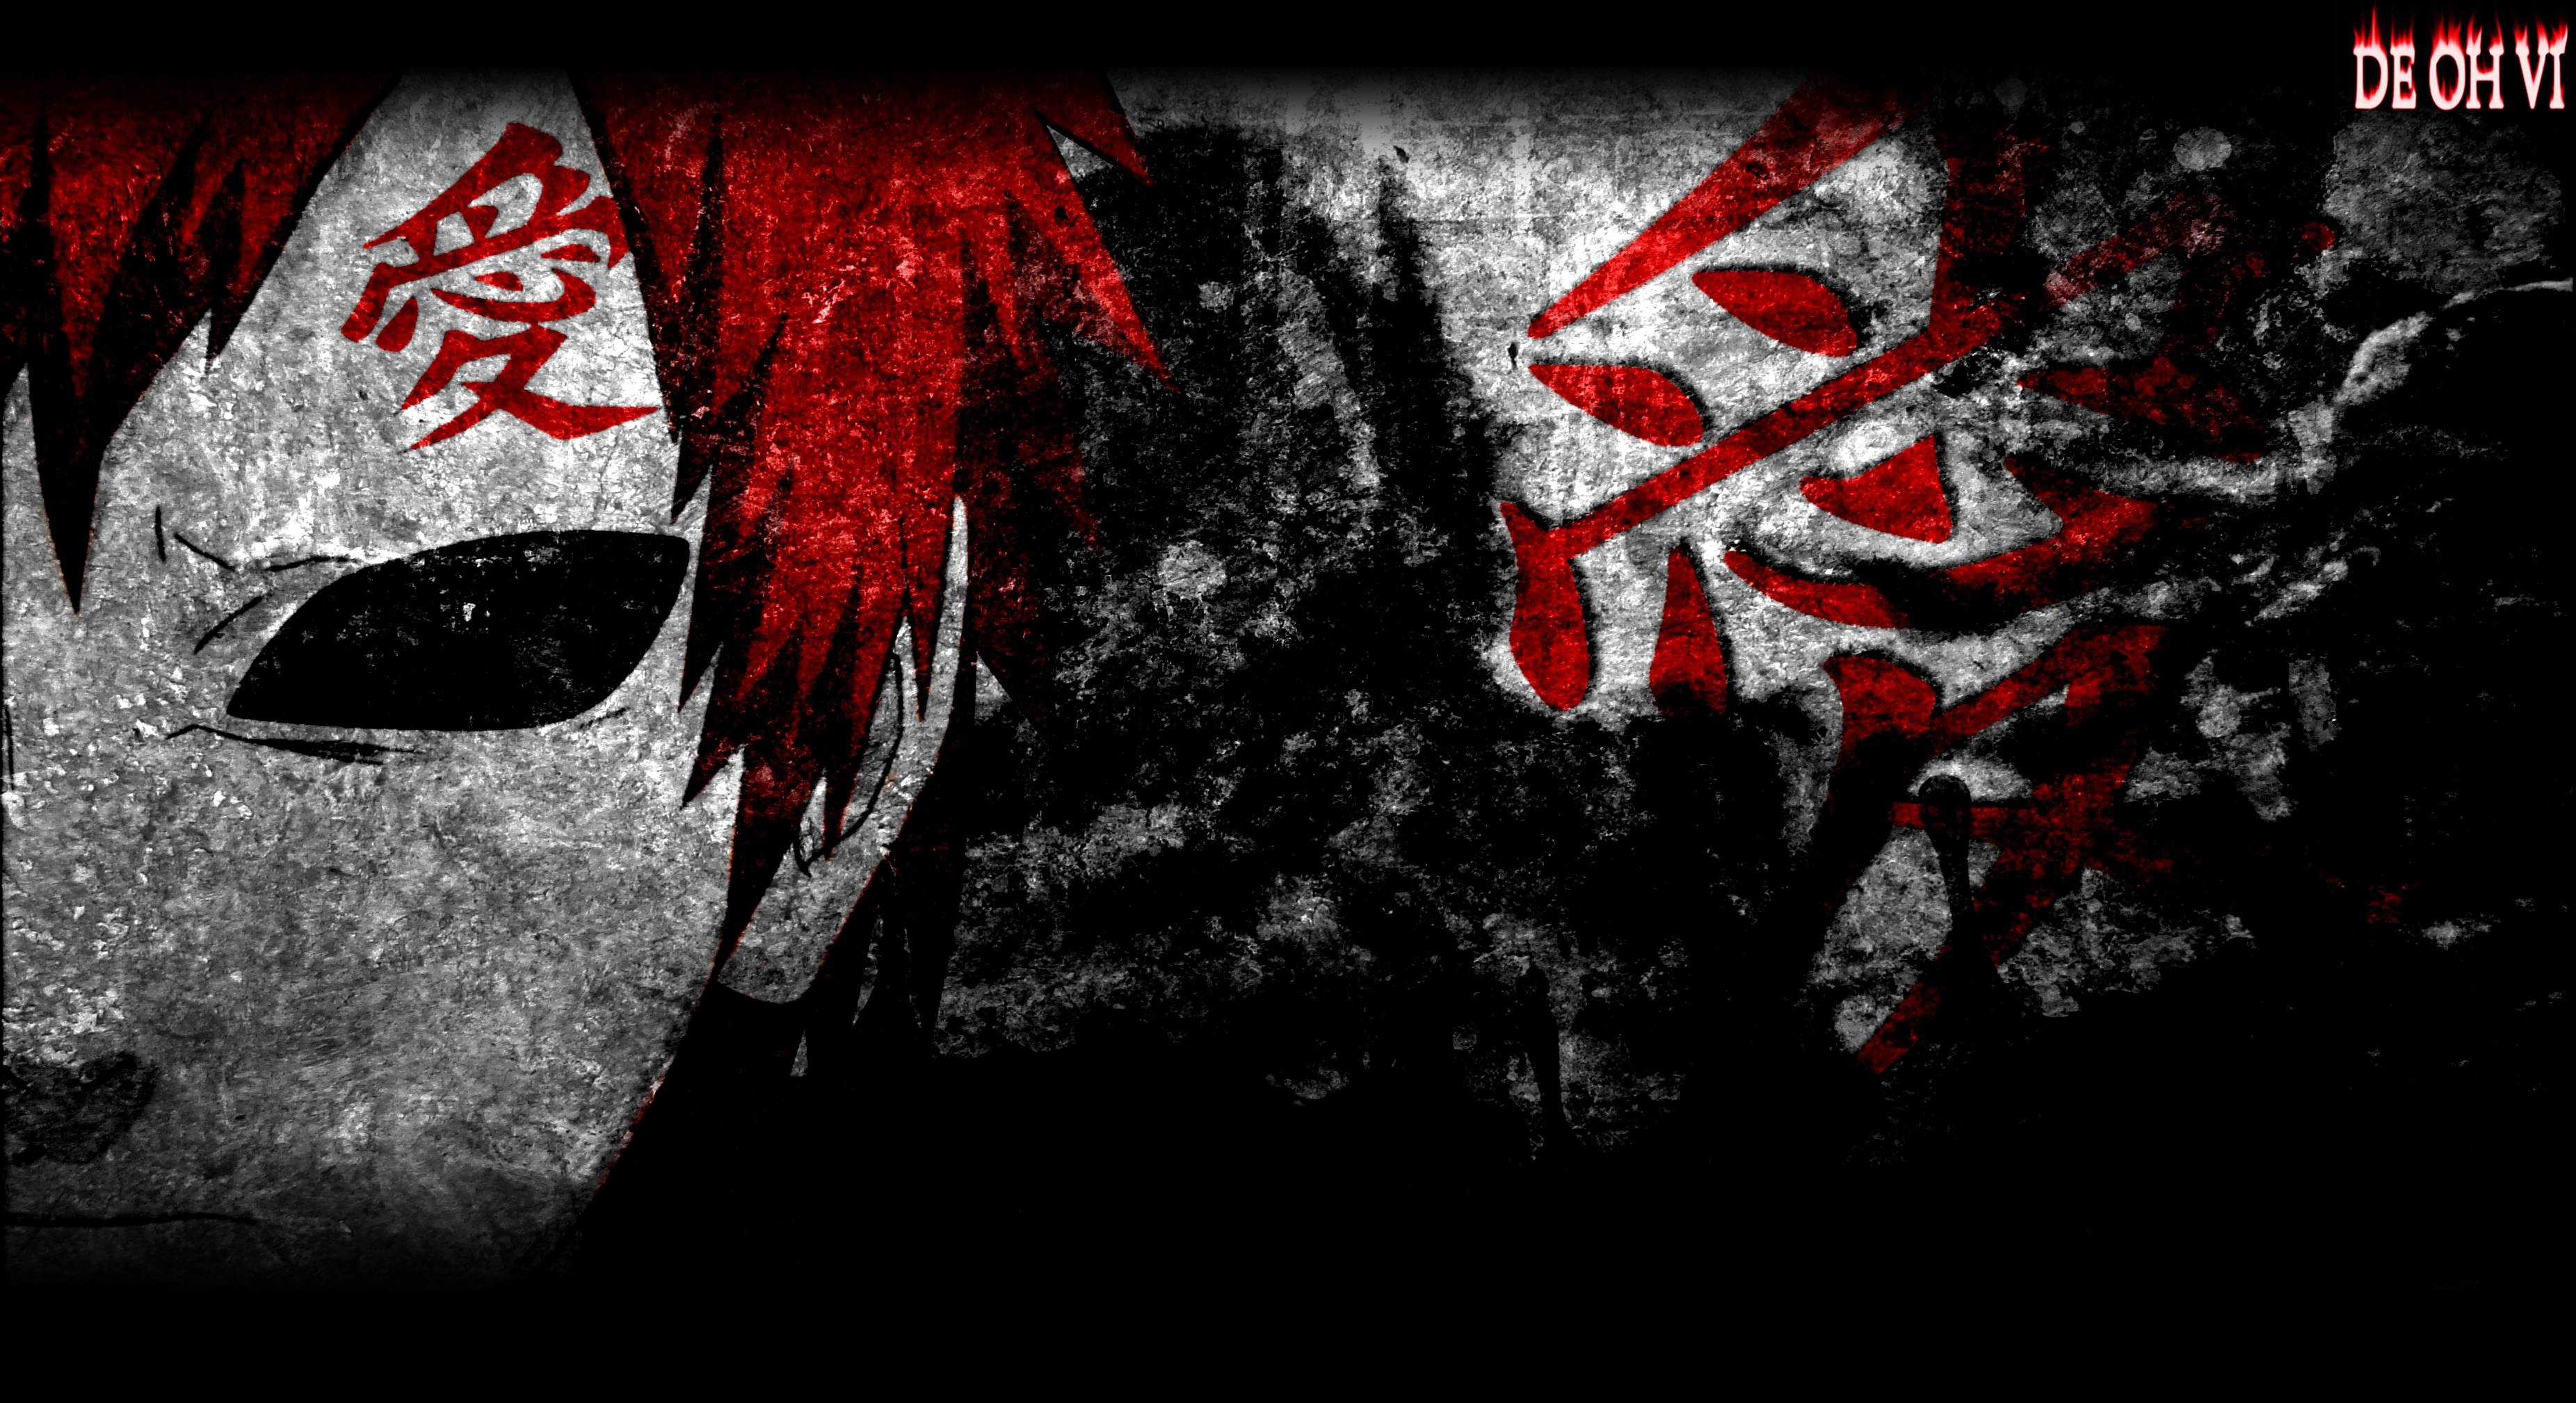 gaara wallpaper 77718 – flipped   Images And Wallpapers – all free .